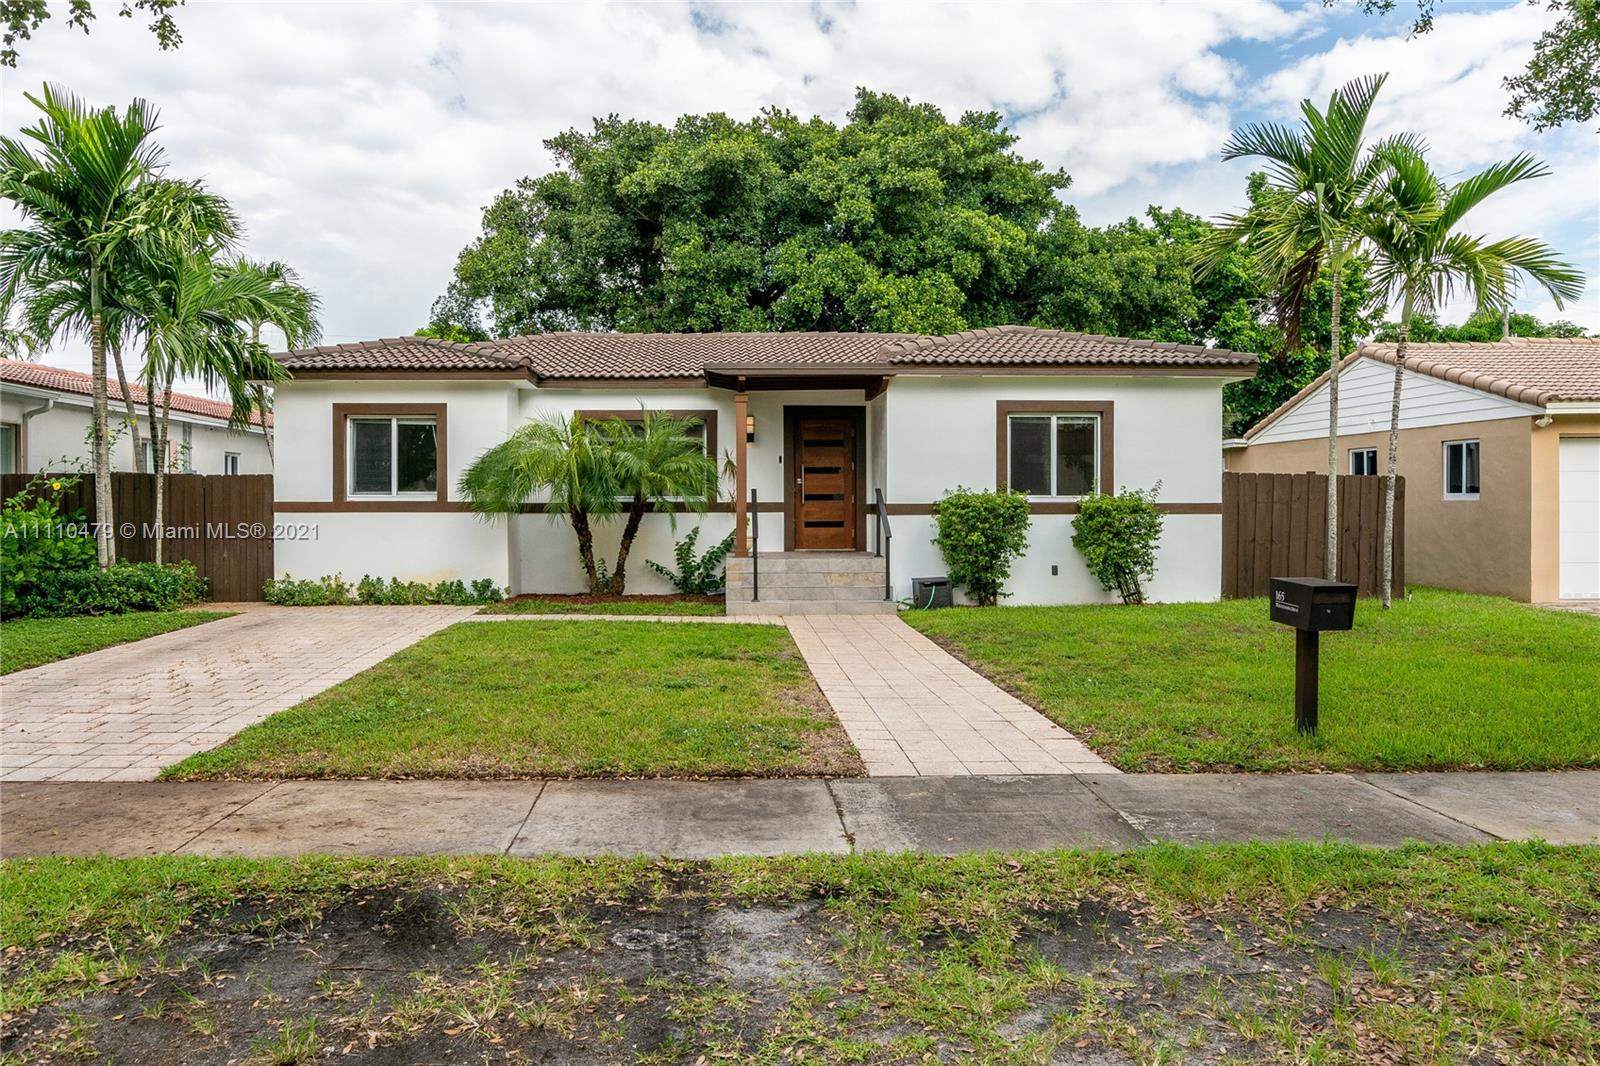 Single Family Home,For Sale,165 Whitethorn Dr, Miami Springs, Florida 33166,Brickell,realty,broker,condos near me